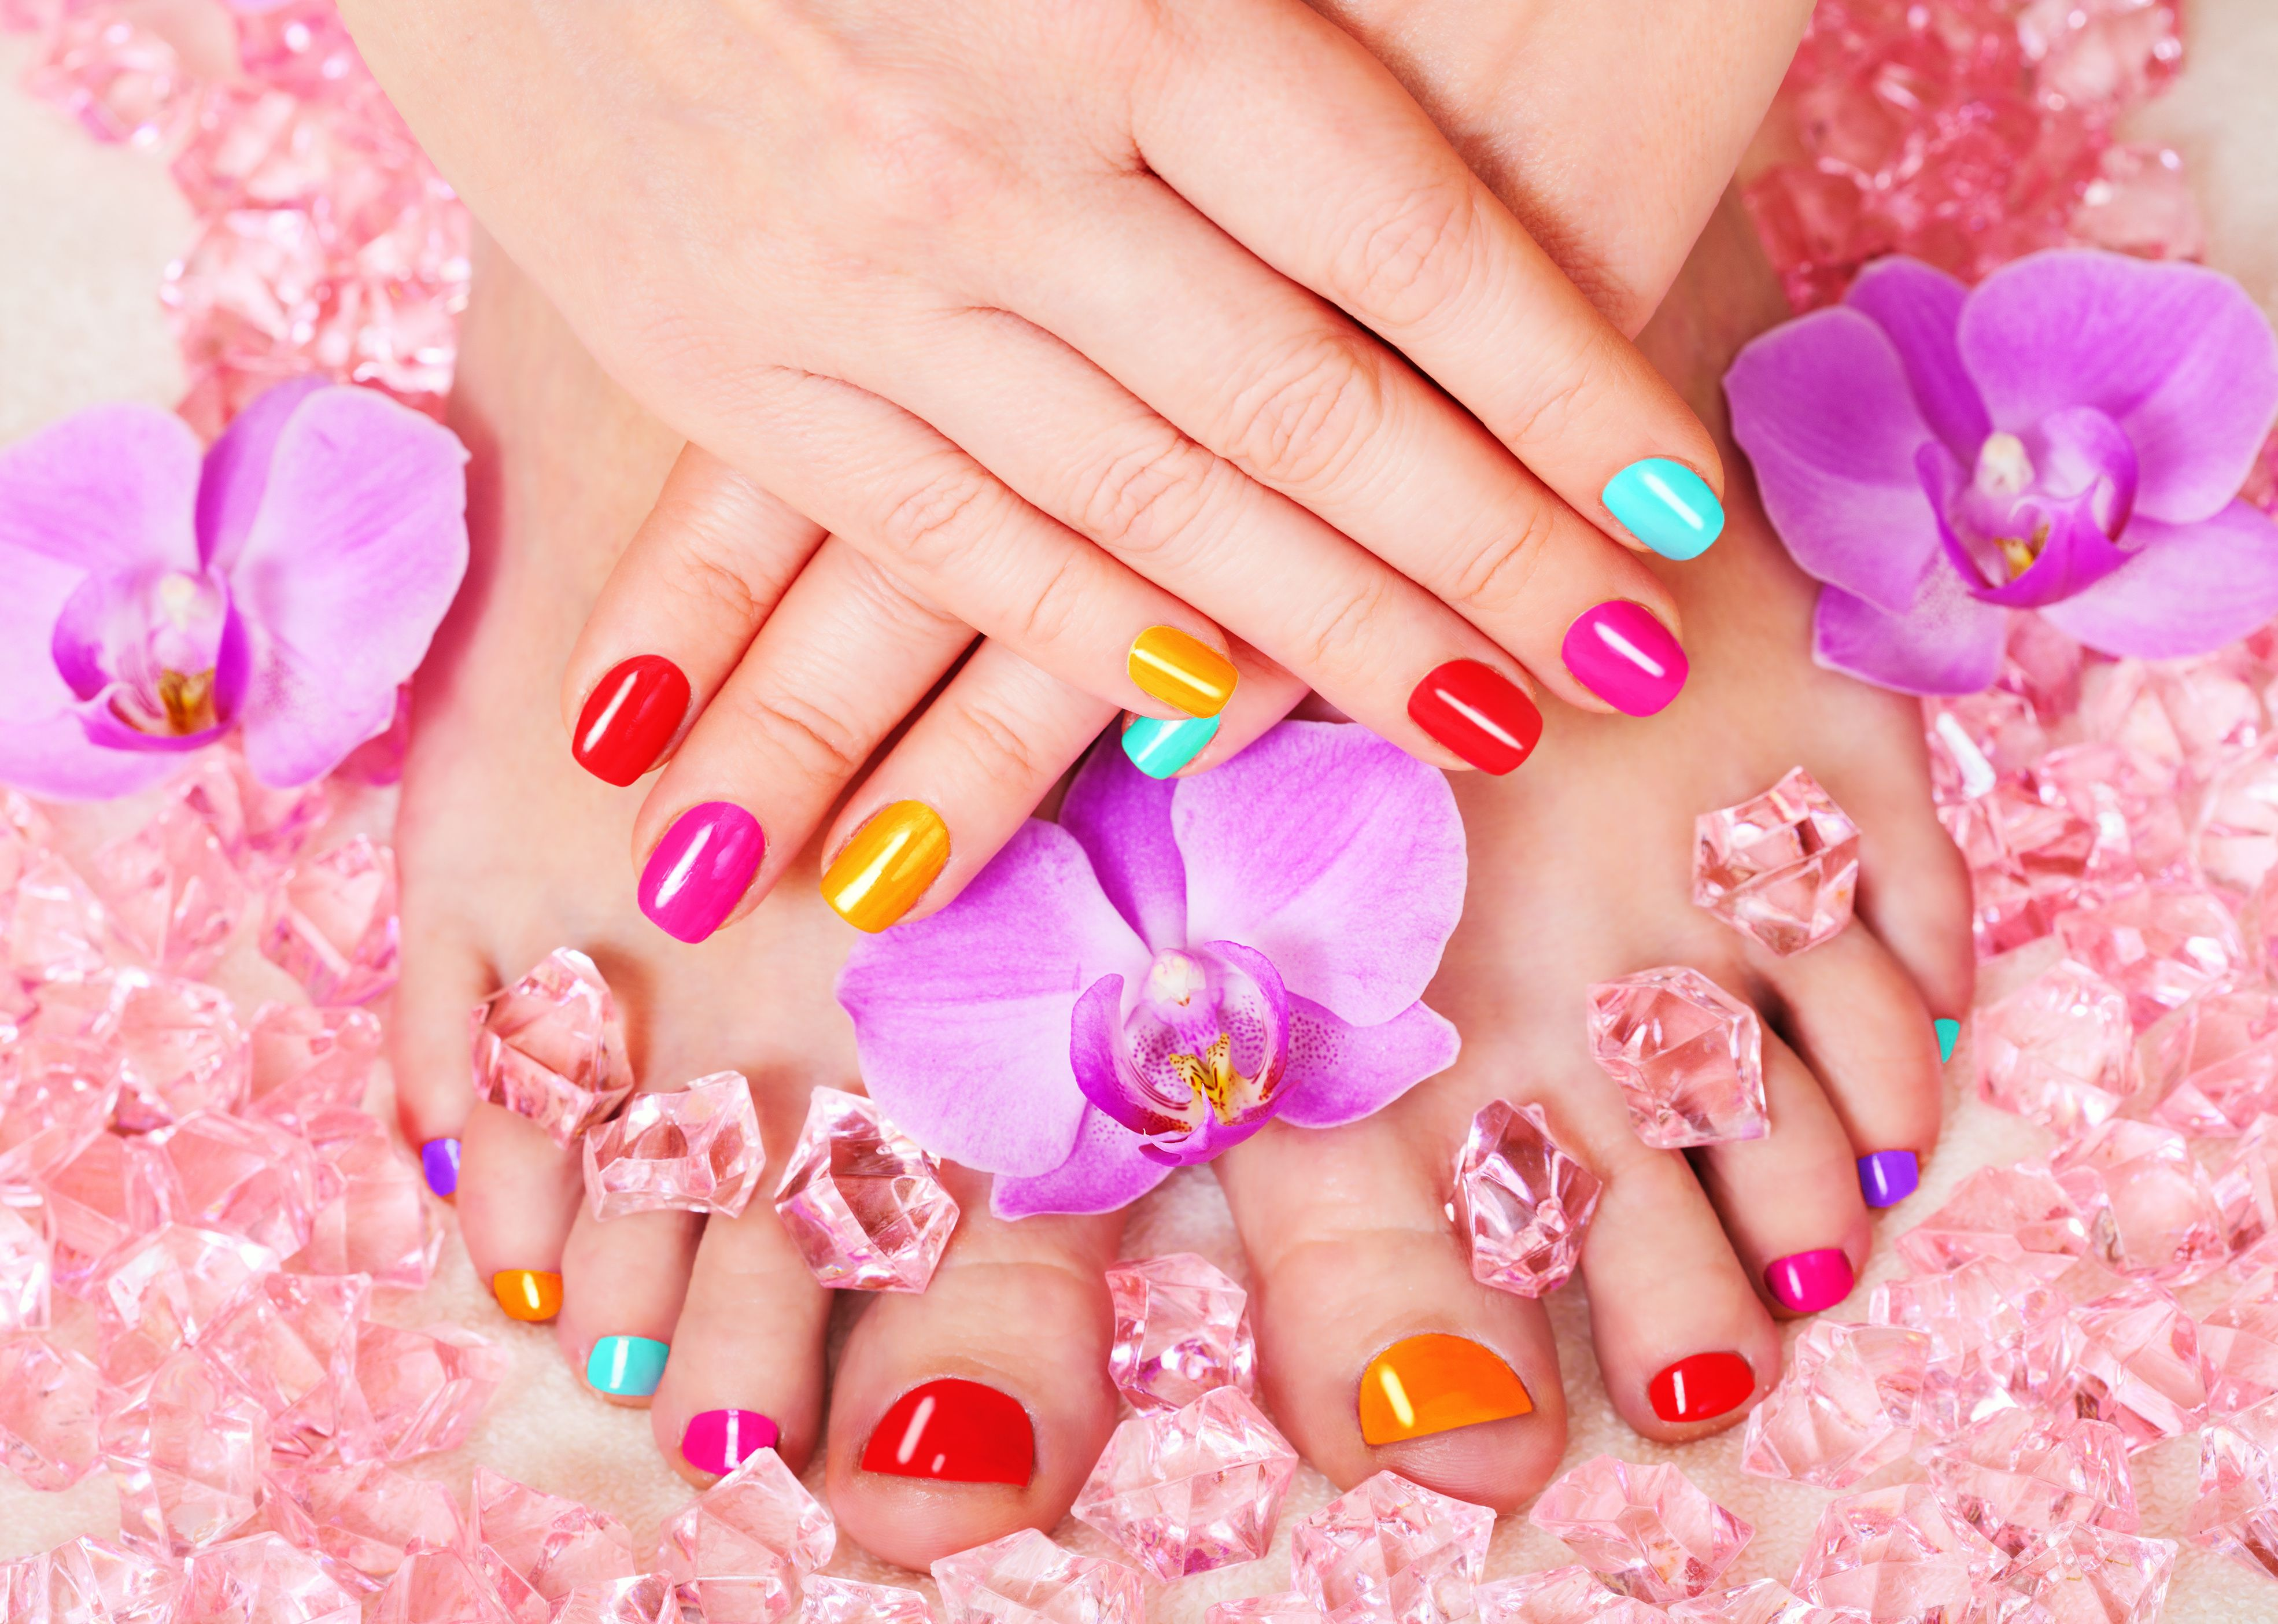 Beautiful Manicure And Pedicure Poster Id F74478460 Manicure And Pedicure Manicure Painted Toe Nails